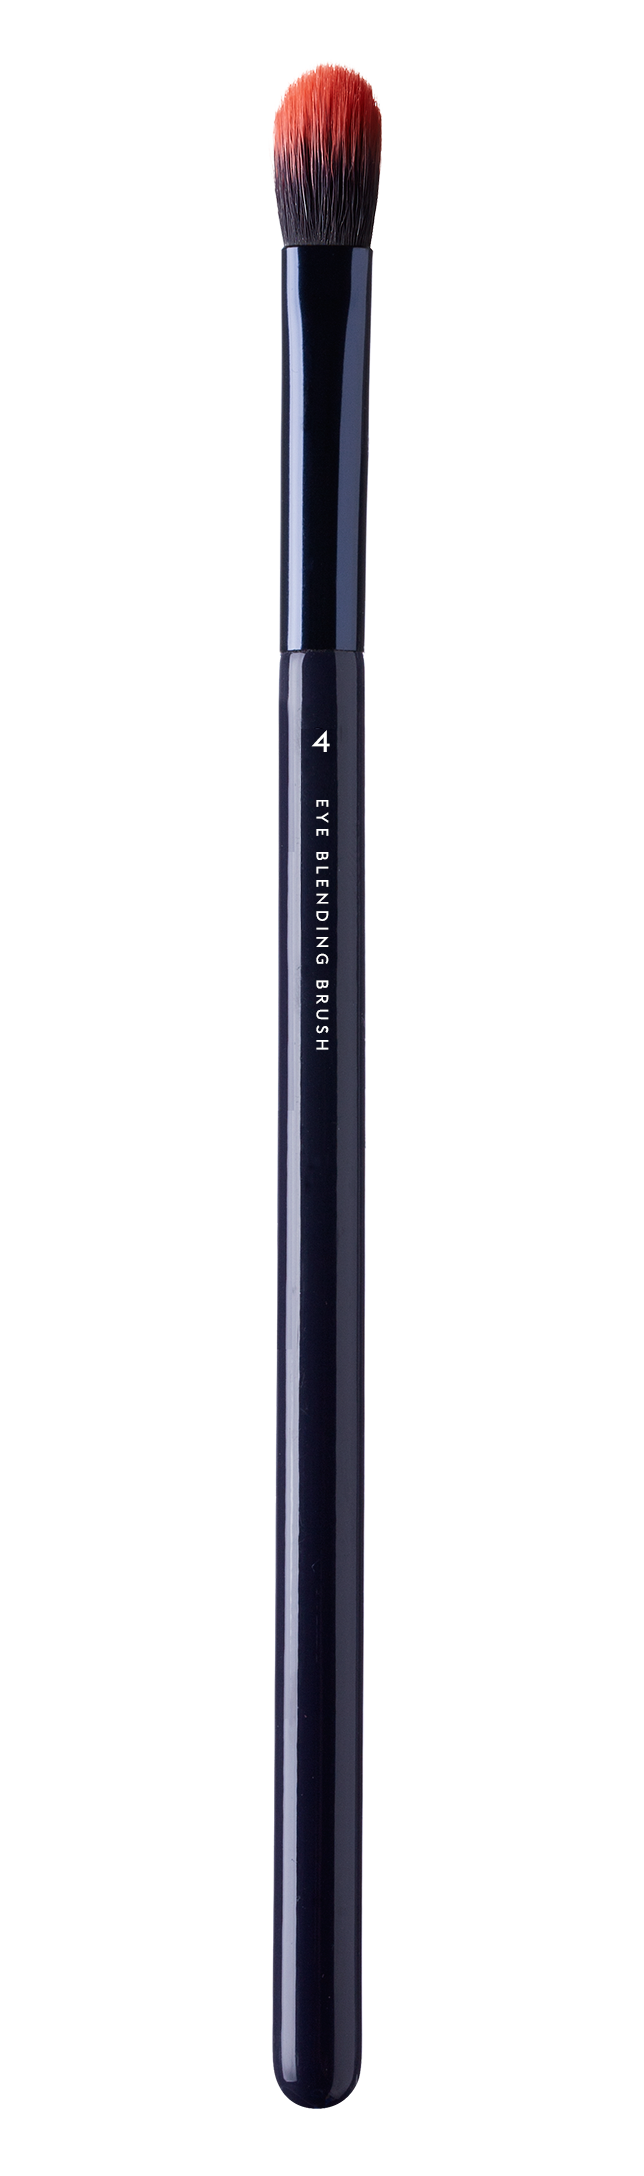 EYE BLENDING BRUSH - Eye blending brush